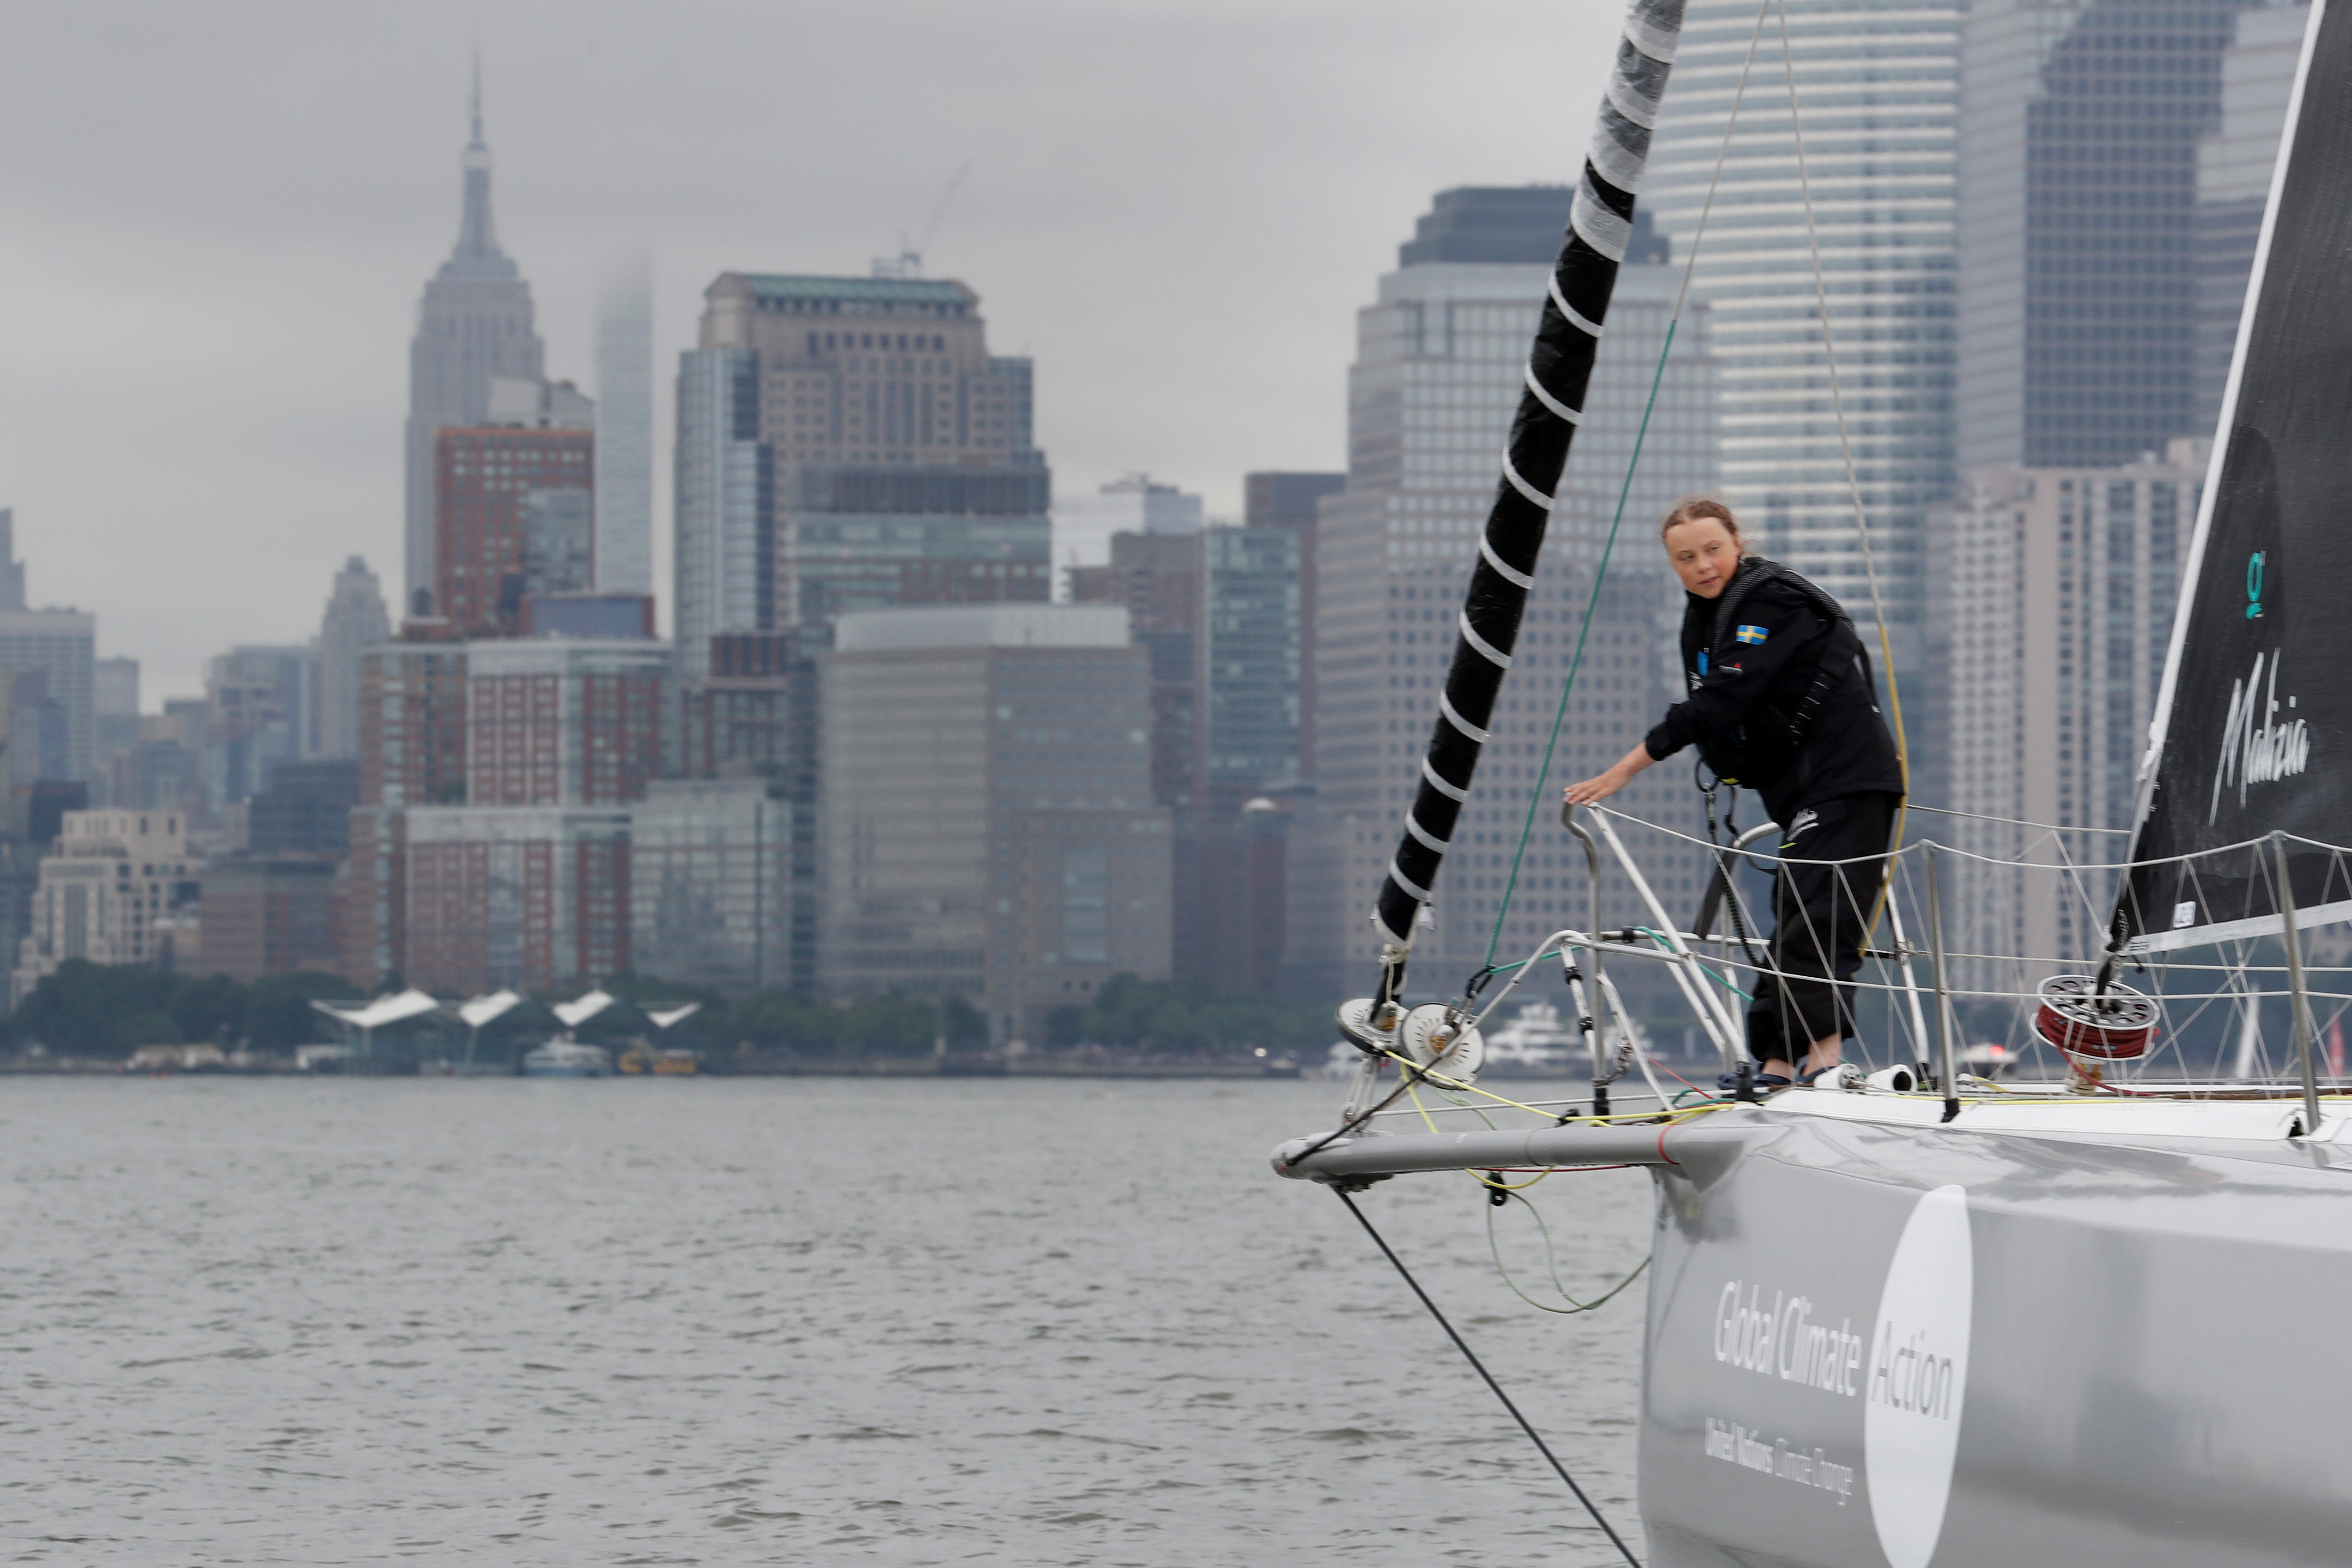 Swedish 16-year-old activist Greta Thunberg sails on the Malizia II racing yacht in New York Harbor as she nears the completion of her trans-Atlantic crossing in order to attend a United Nations summit on climate change in New York, U.S., August 28, 2019. REUTERS/Mike Segar     TPX IMAGES OF THE DAY